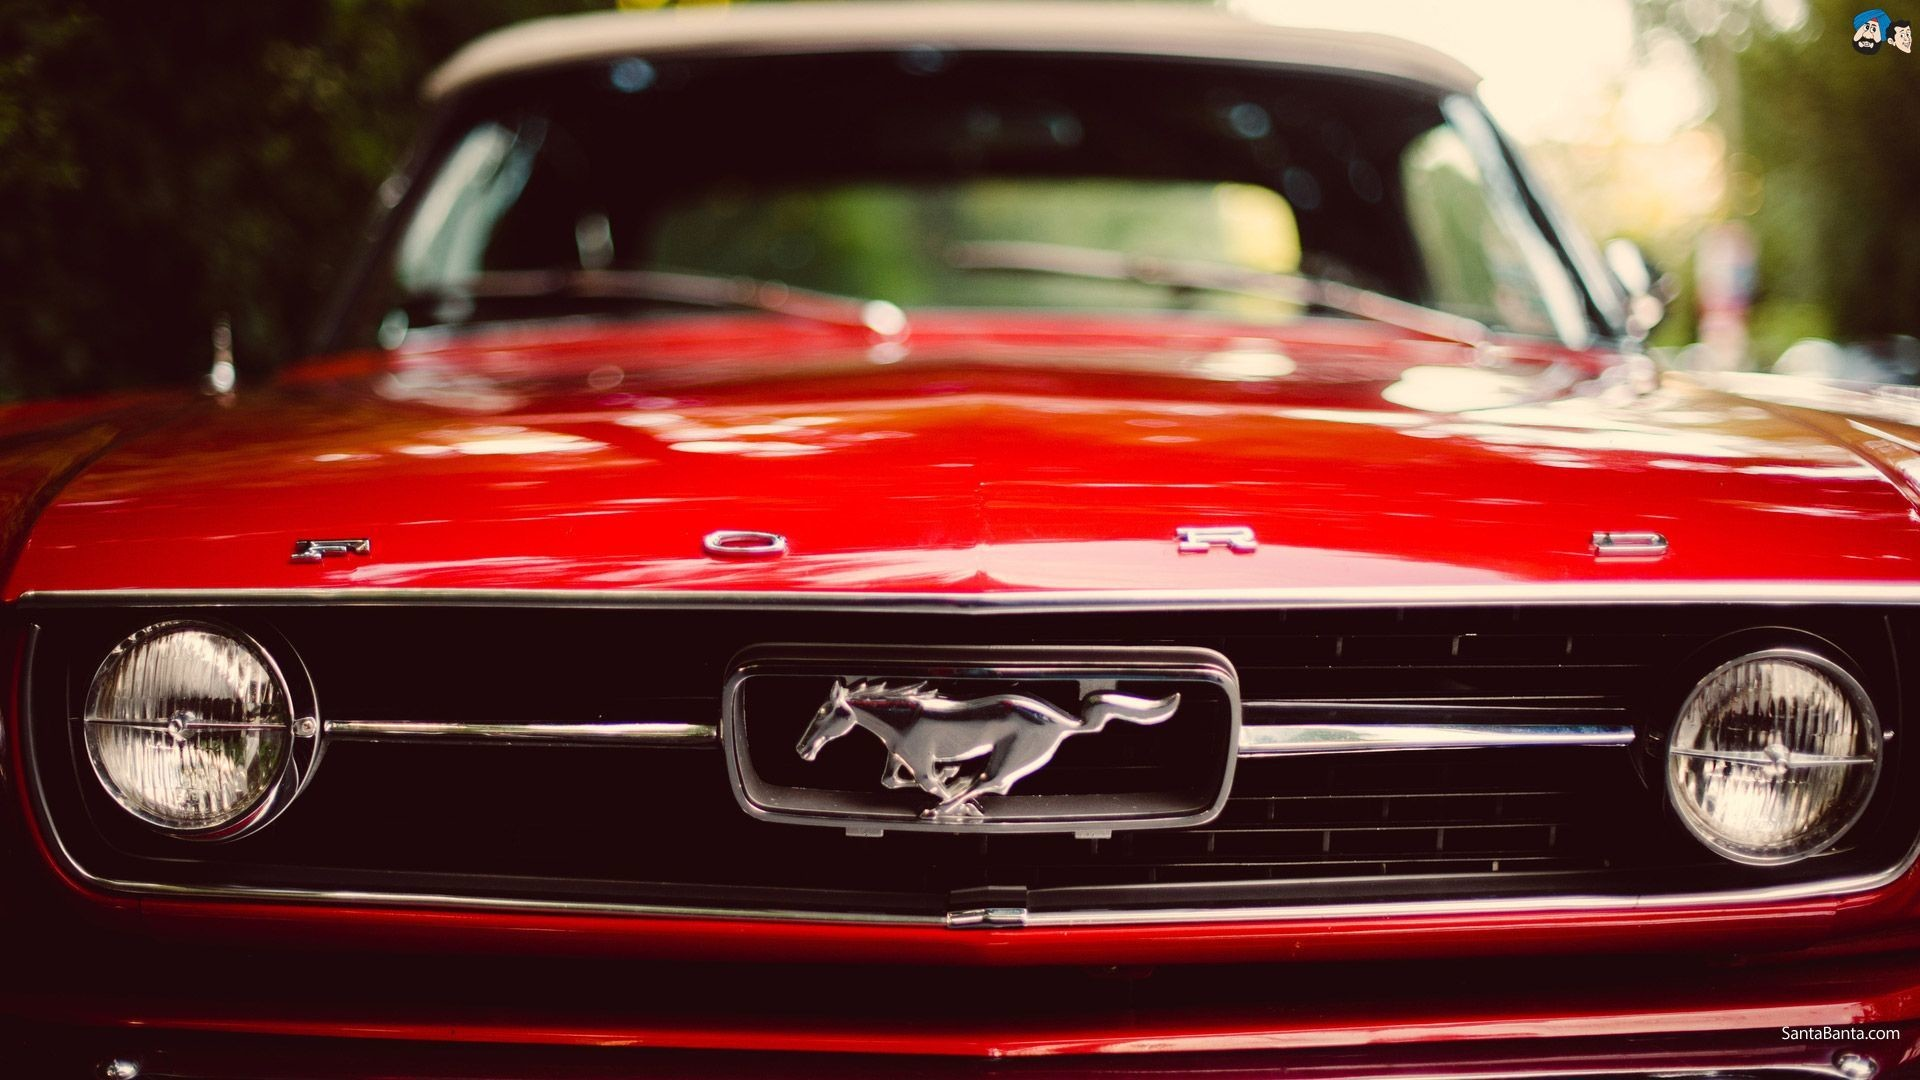 1920x1080 Ford Mustang Wallpapers Wallpaper